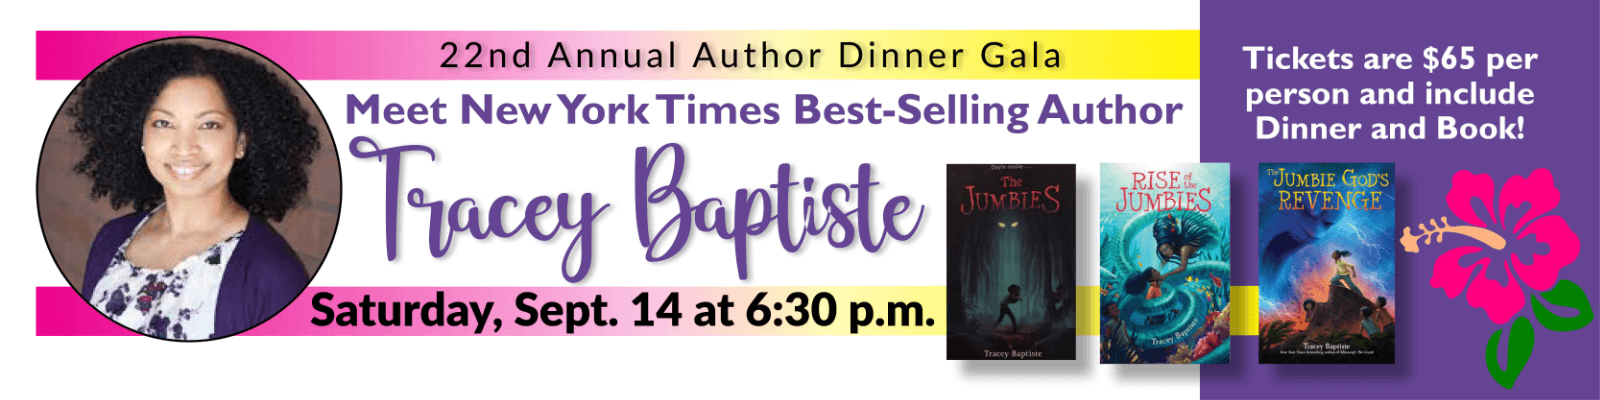 Author Dinner - Tracey Baptiste